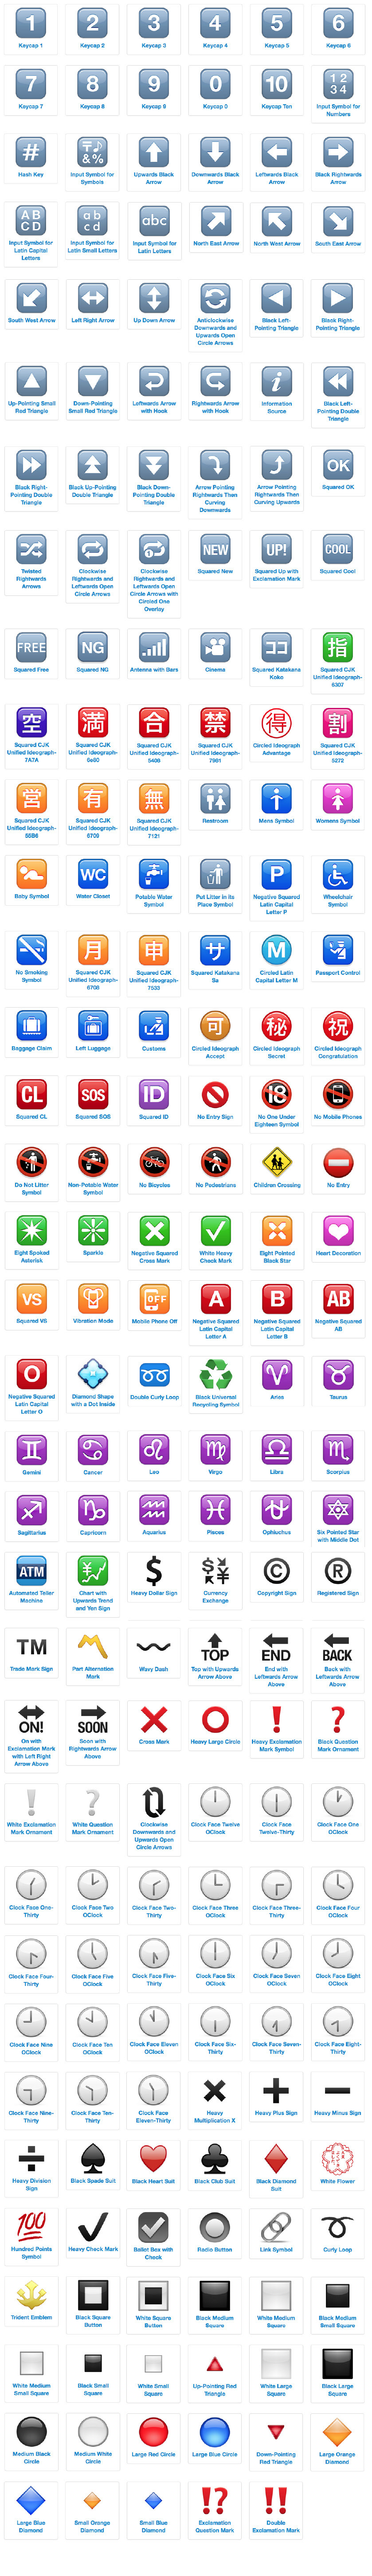 Emoji Icon List Symbols With Meanings And Definitions Life Hacks